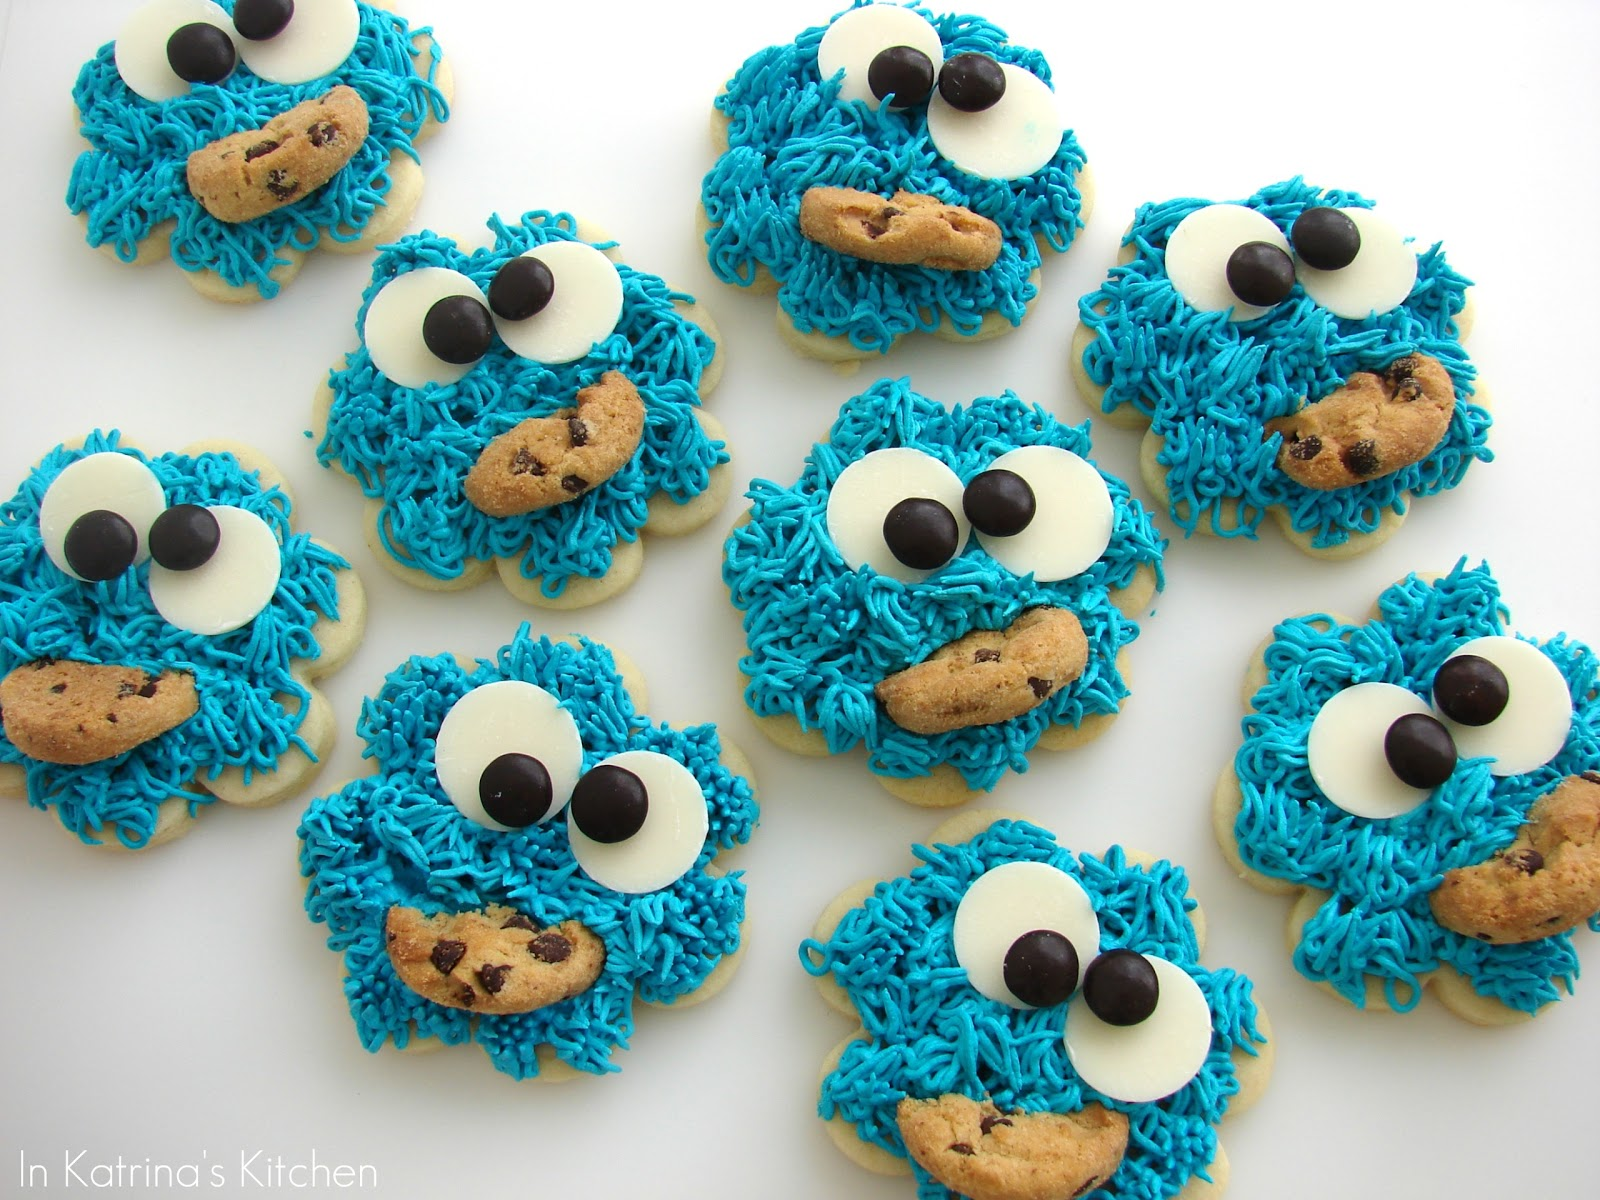 Cookie Monster Cookies Recipe and Tutorial | In Katrina's ...